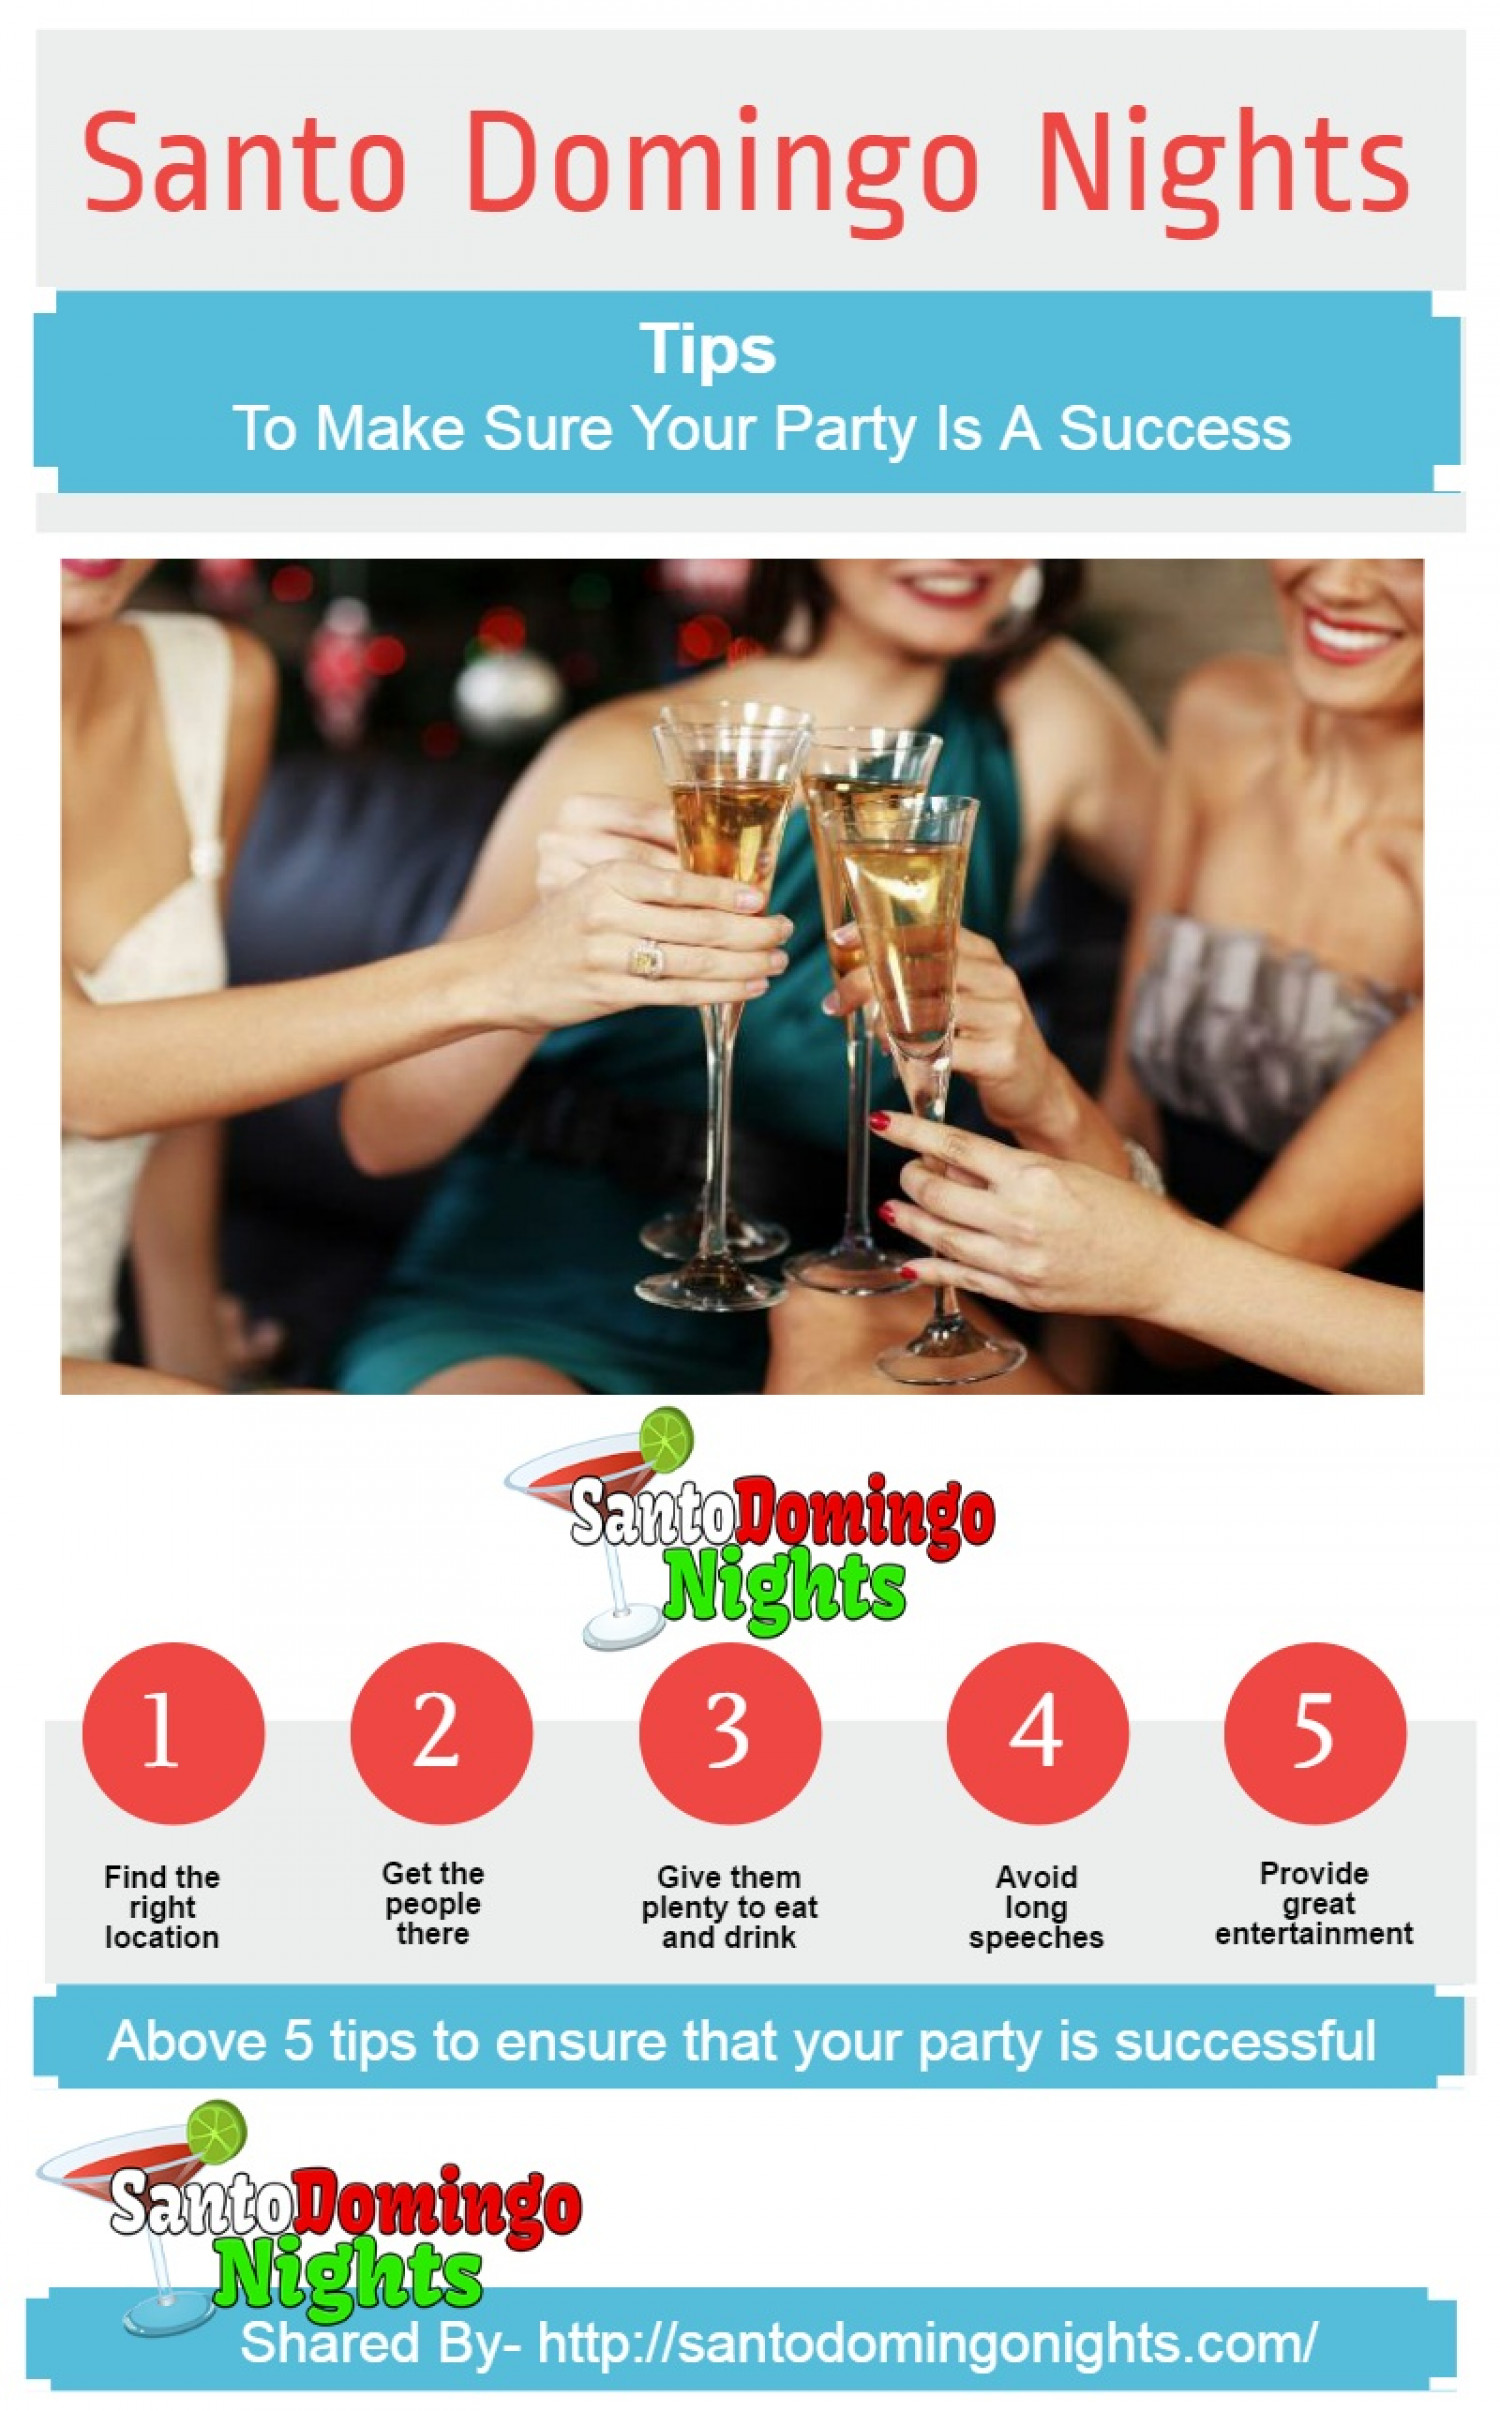 5 Tips To Make Sure Your Party Is A Success Infographic